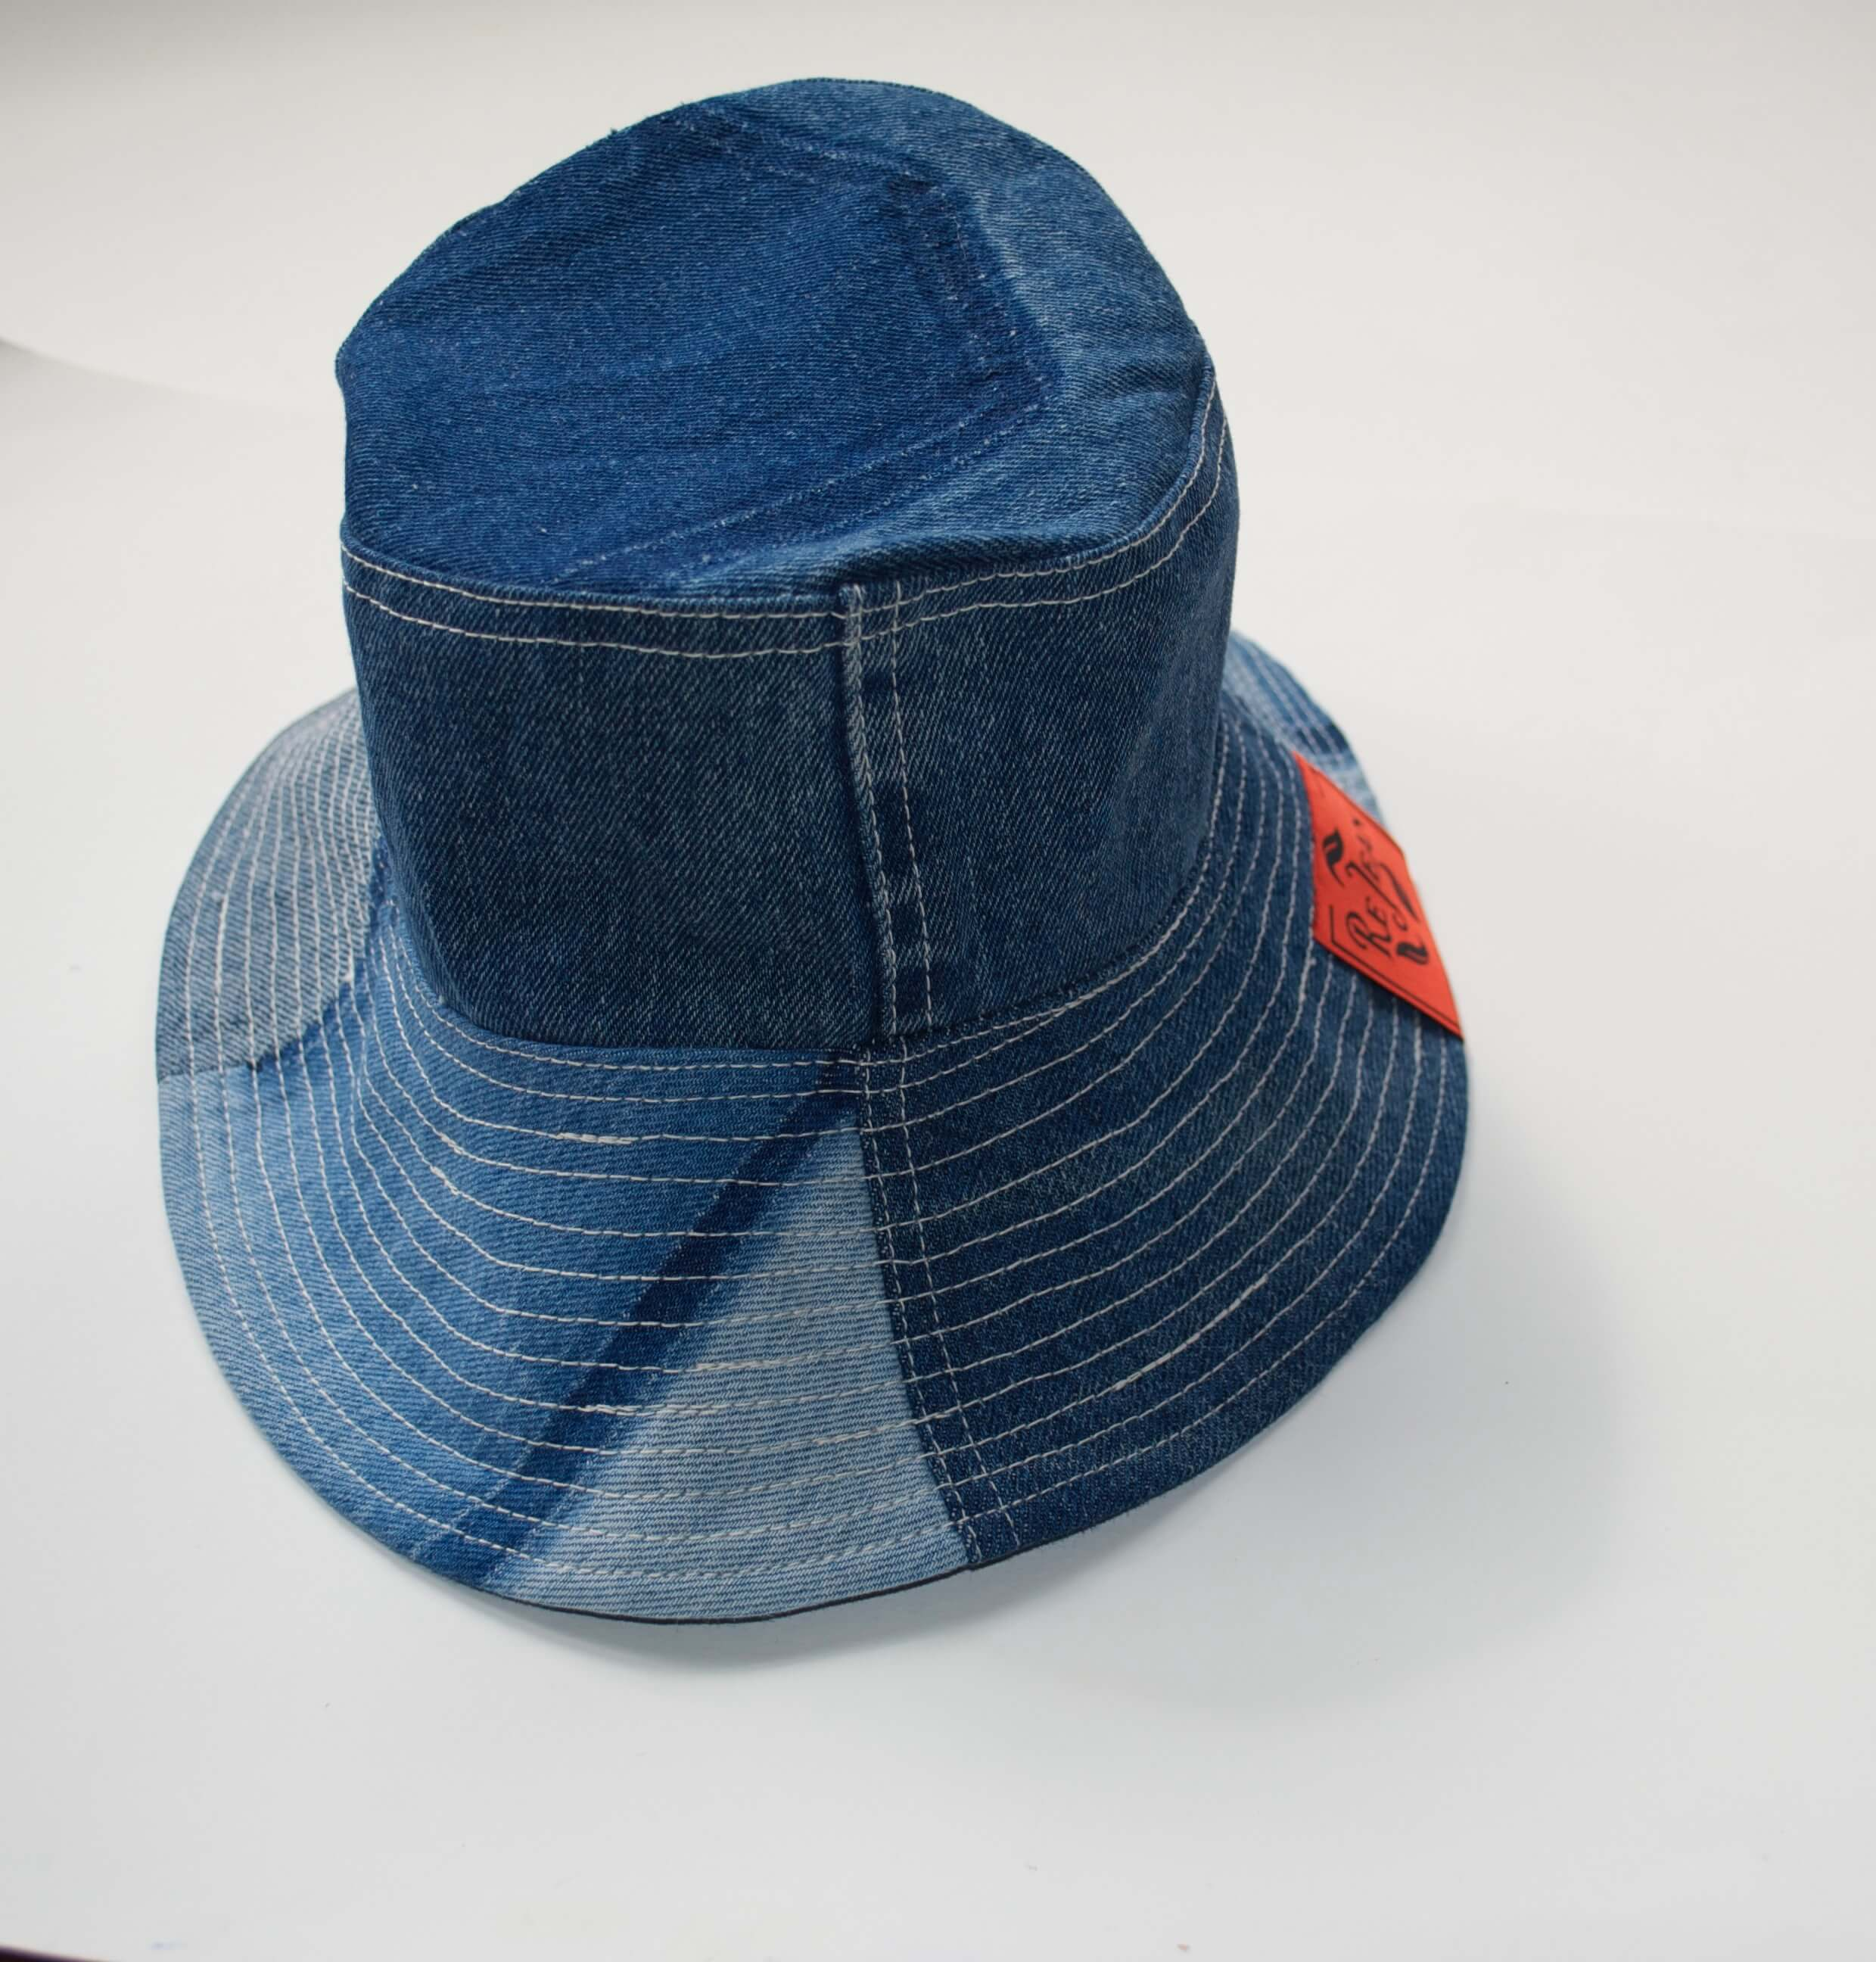 STONE WASH DENIM BUCKET HAT - ReJean Denim - zero waste - circular fashion brand